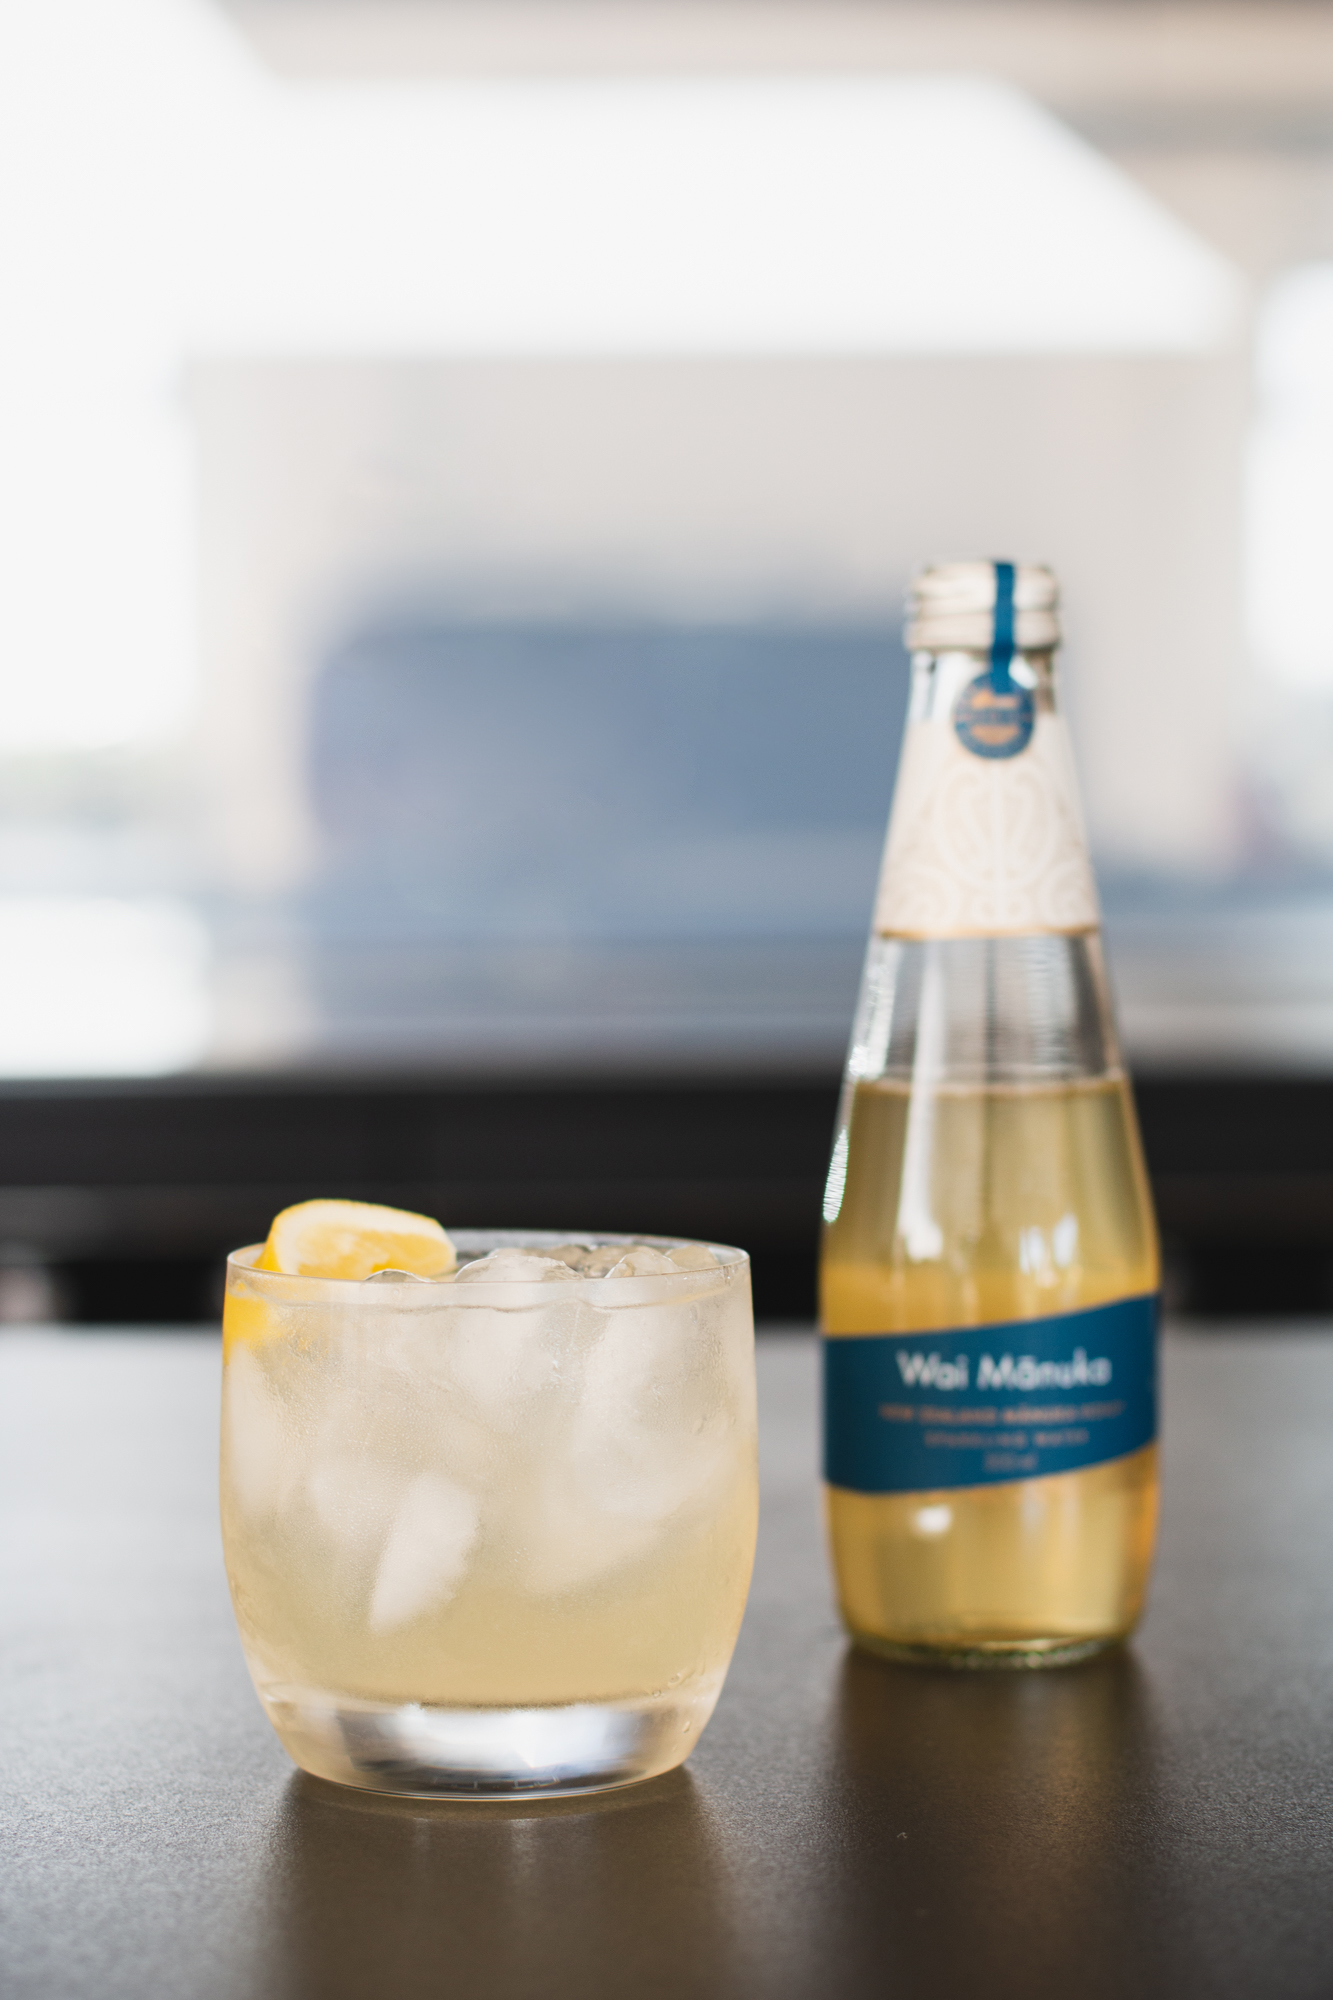 Wai Manuka Tom Collins Cocktail v2